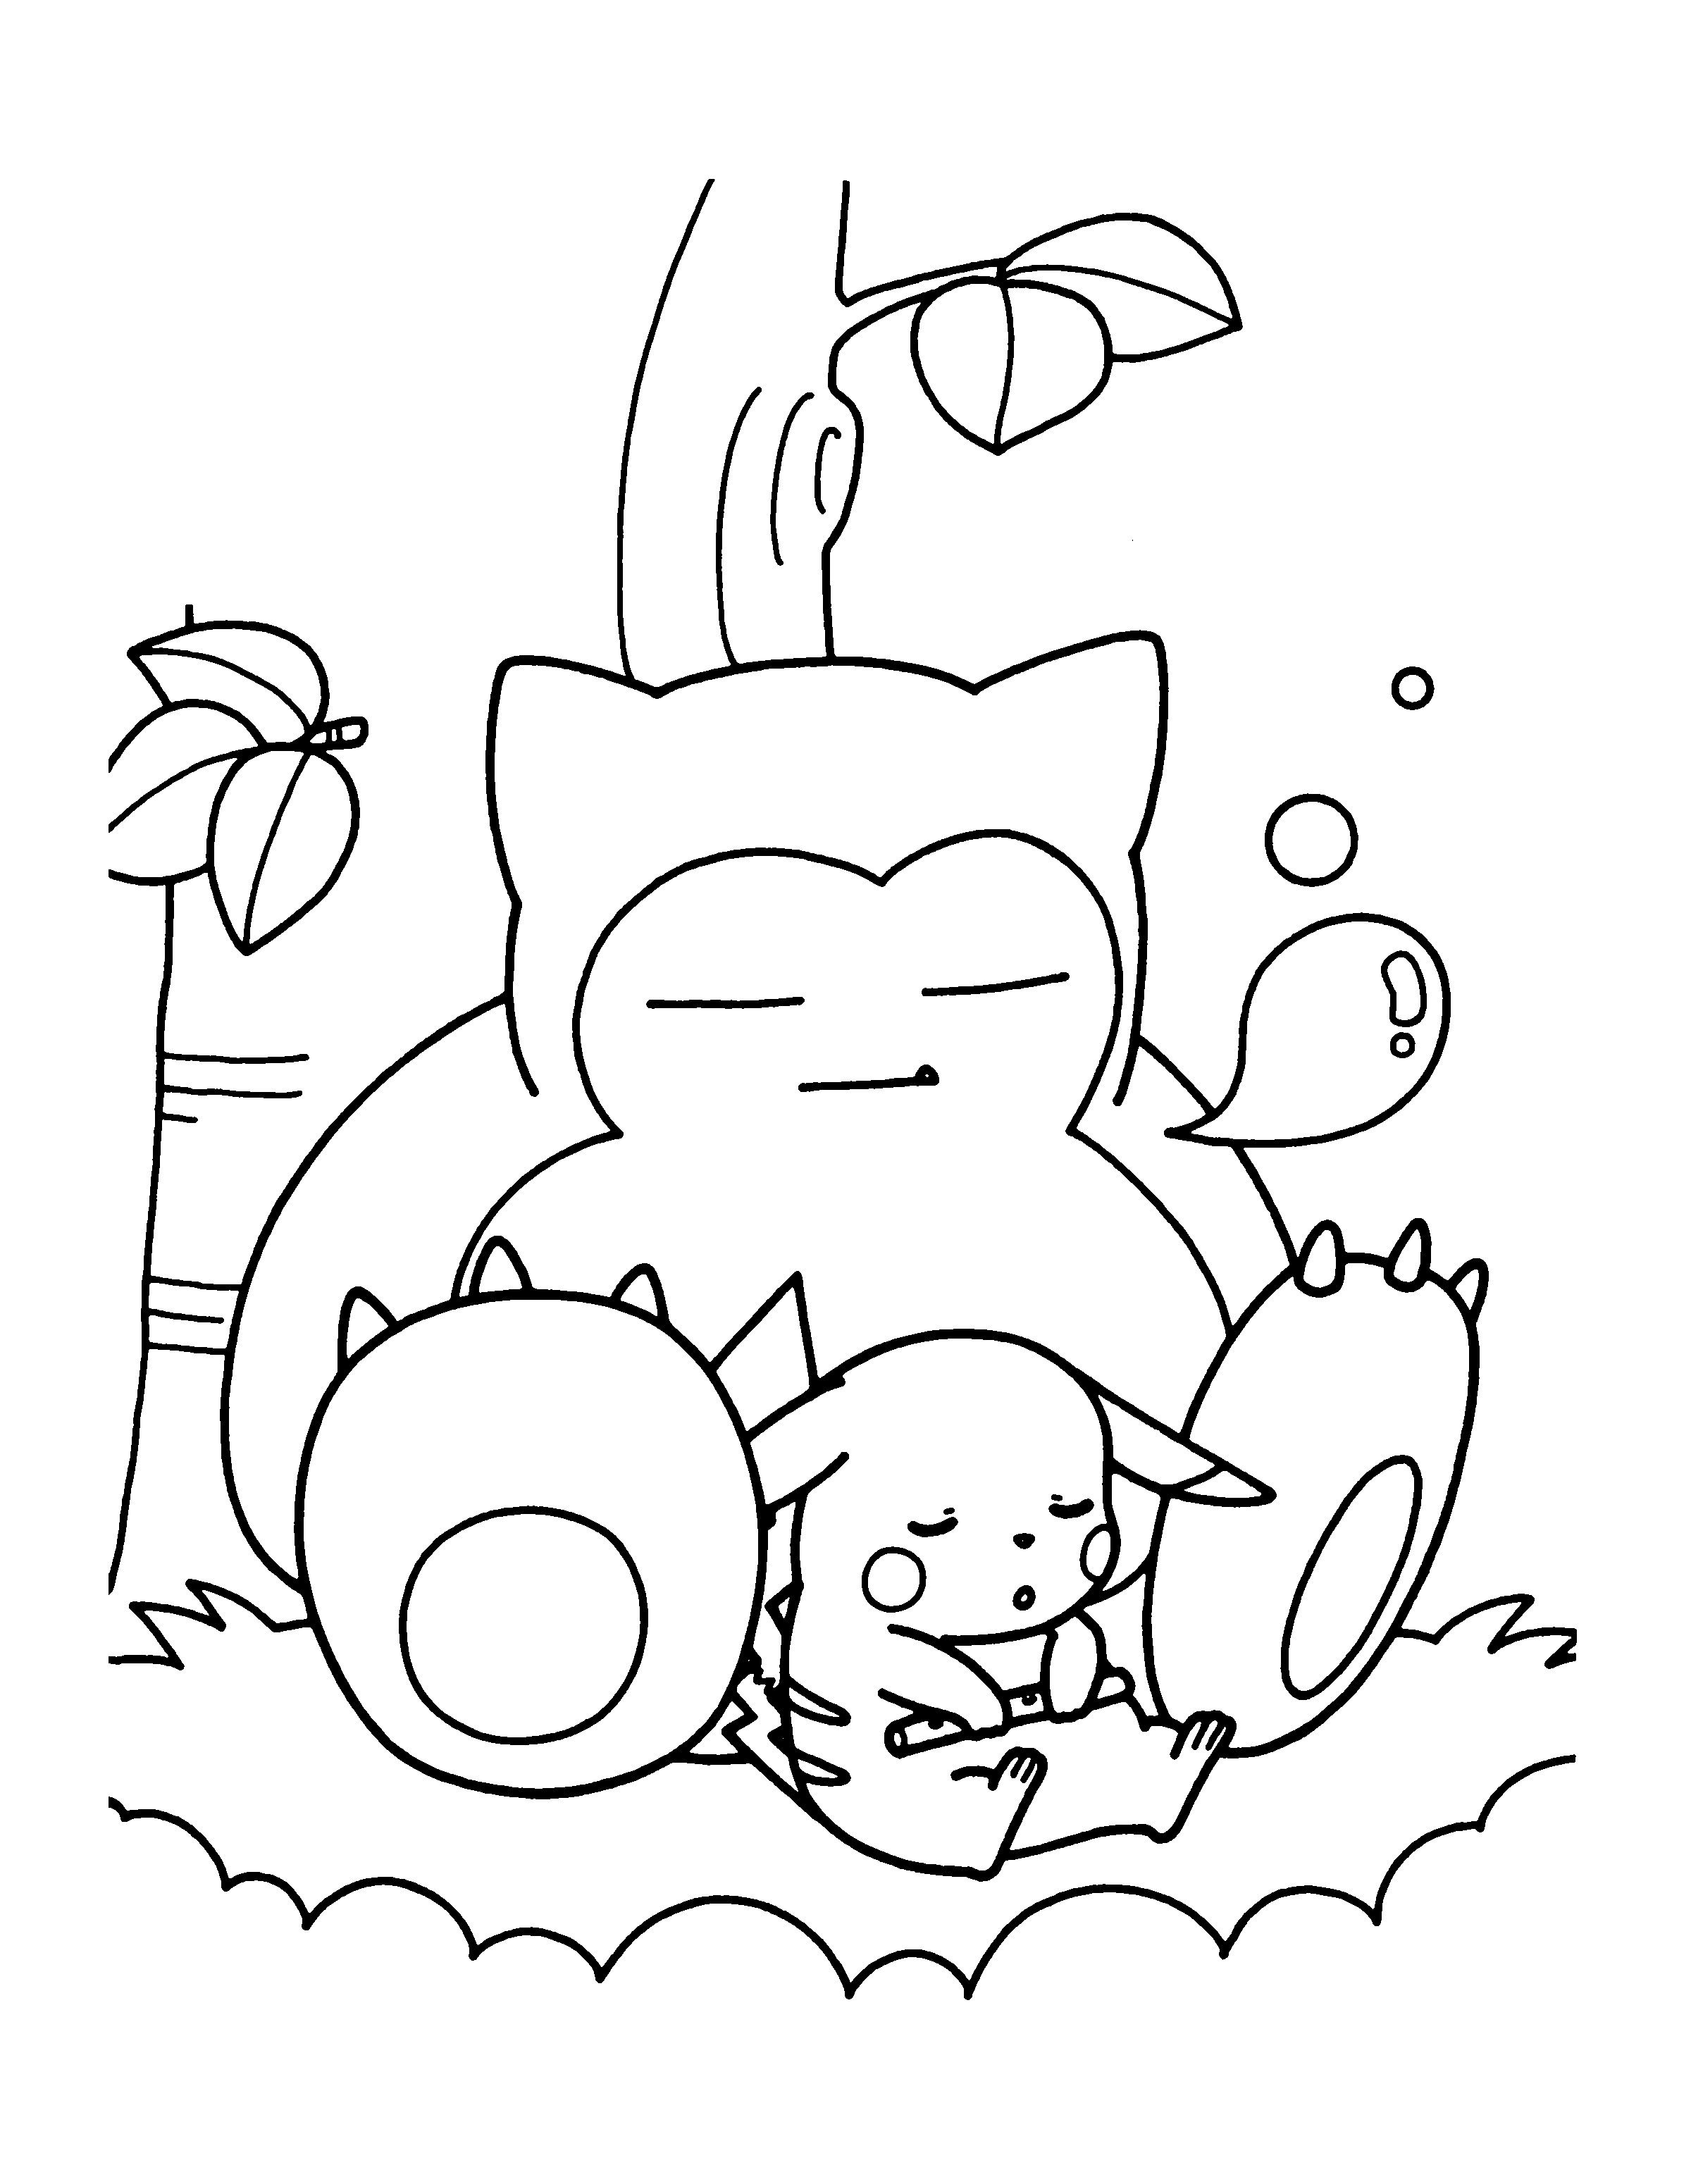 snorlax coloring pages Pokemon Coloring Pages Snorlax – From the thousands of pictures on  snorlax coloring pages